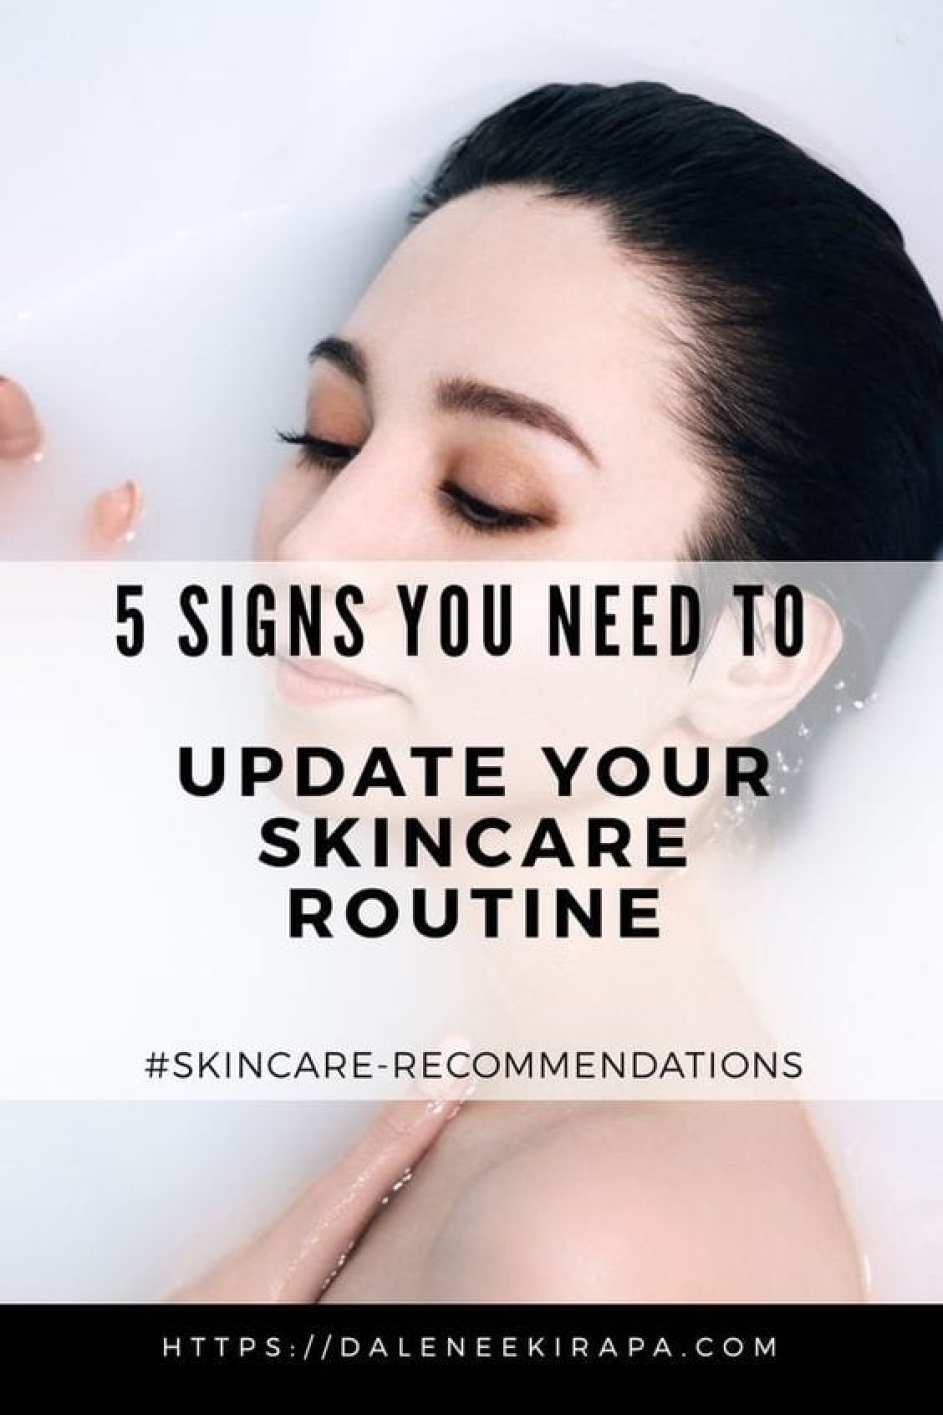 5 Signs You Need to Update Your Skincare Routine